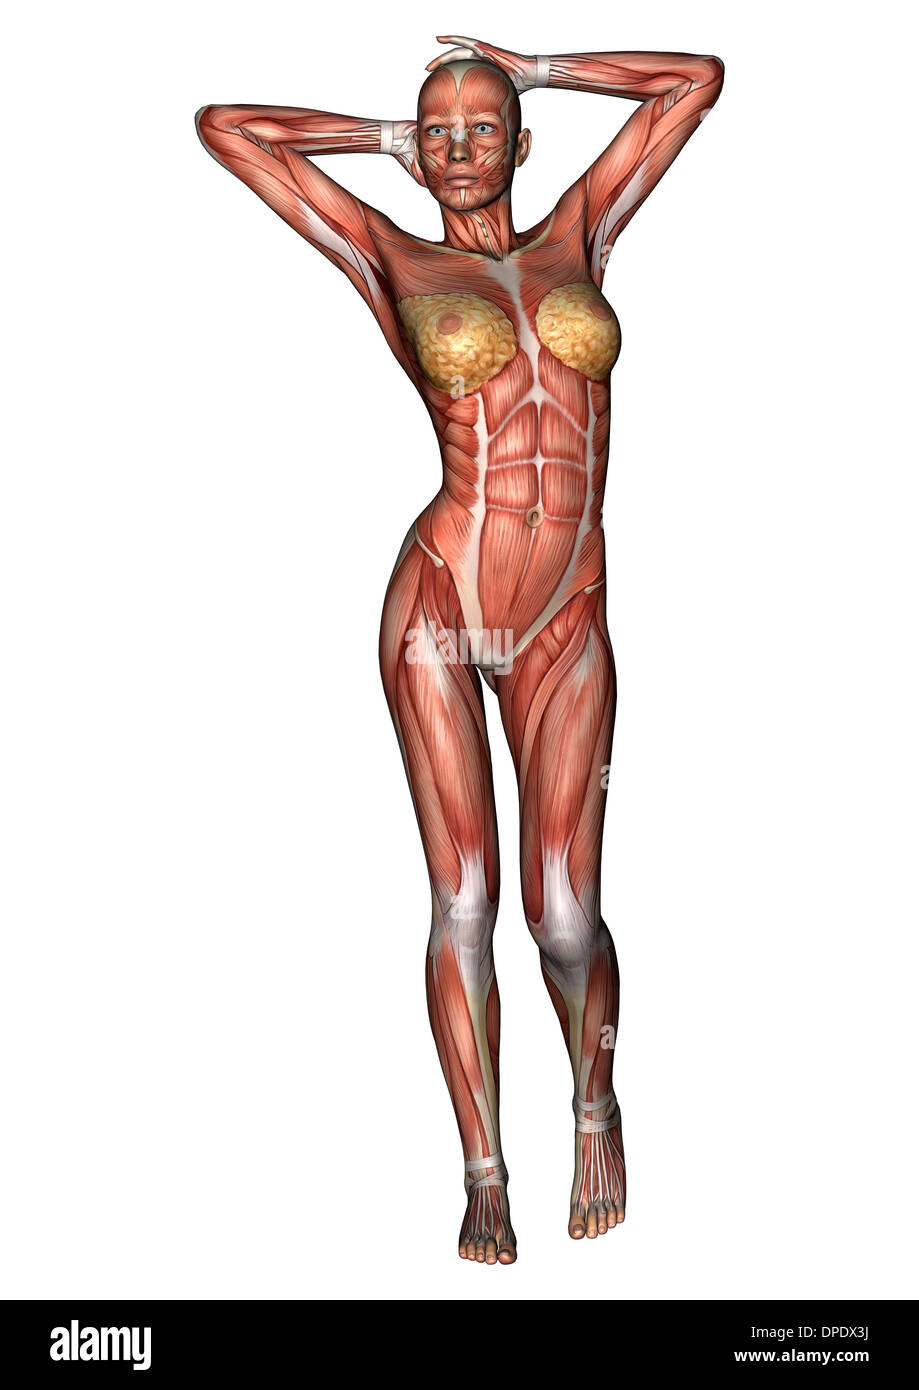 3d digital render of a female anatomy figure with muscles map, Muscles